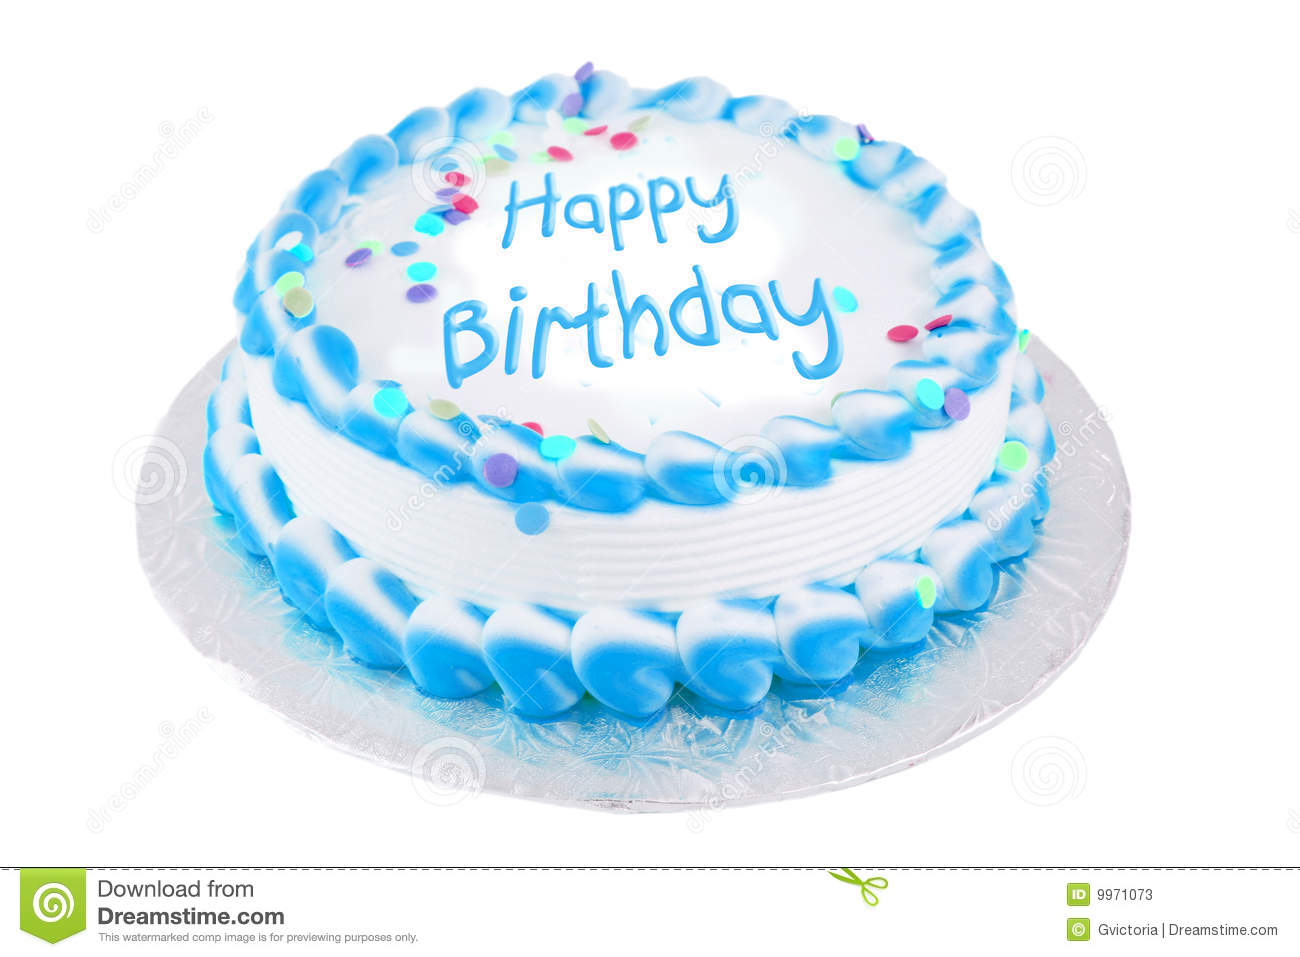 Stock Photos Happy Birthday Festive Cake Image9971073 on 100th Day